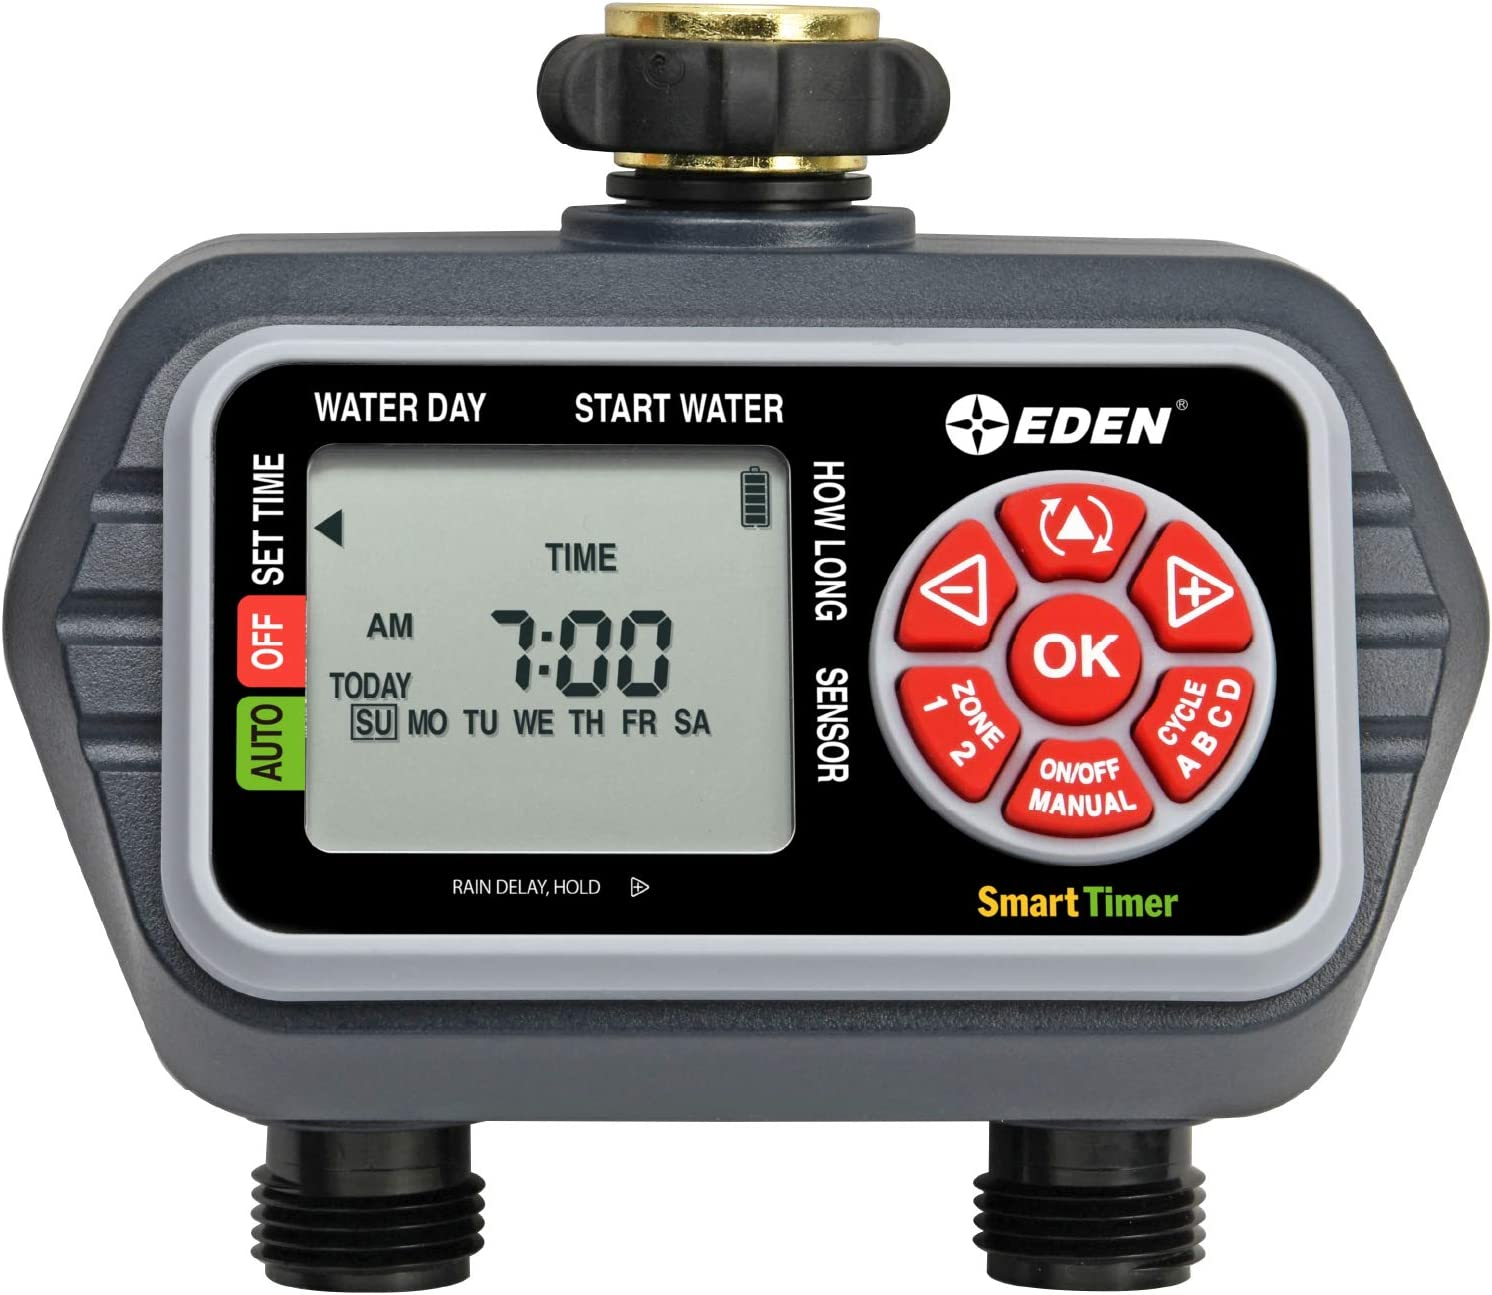 Eden 25412 Programmable Digital Water 2 Timer Long-awaited Max 72% OFF Zone Compatible